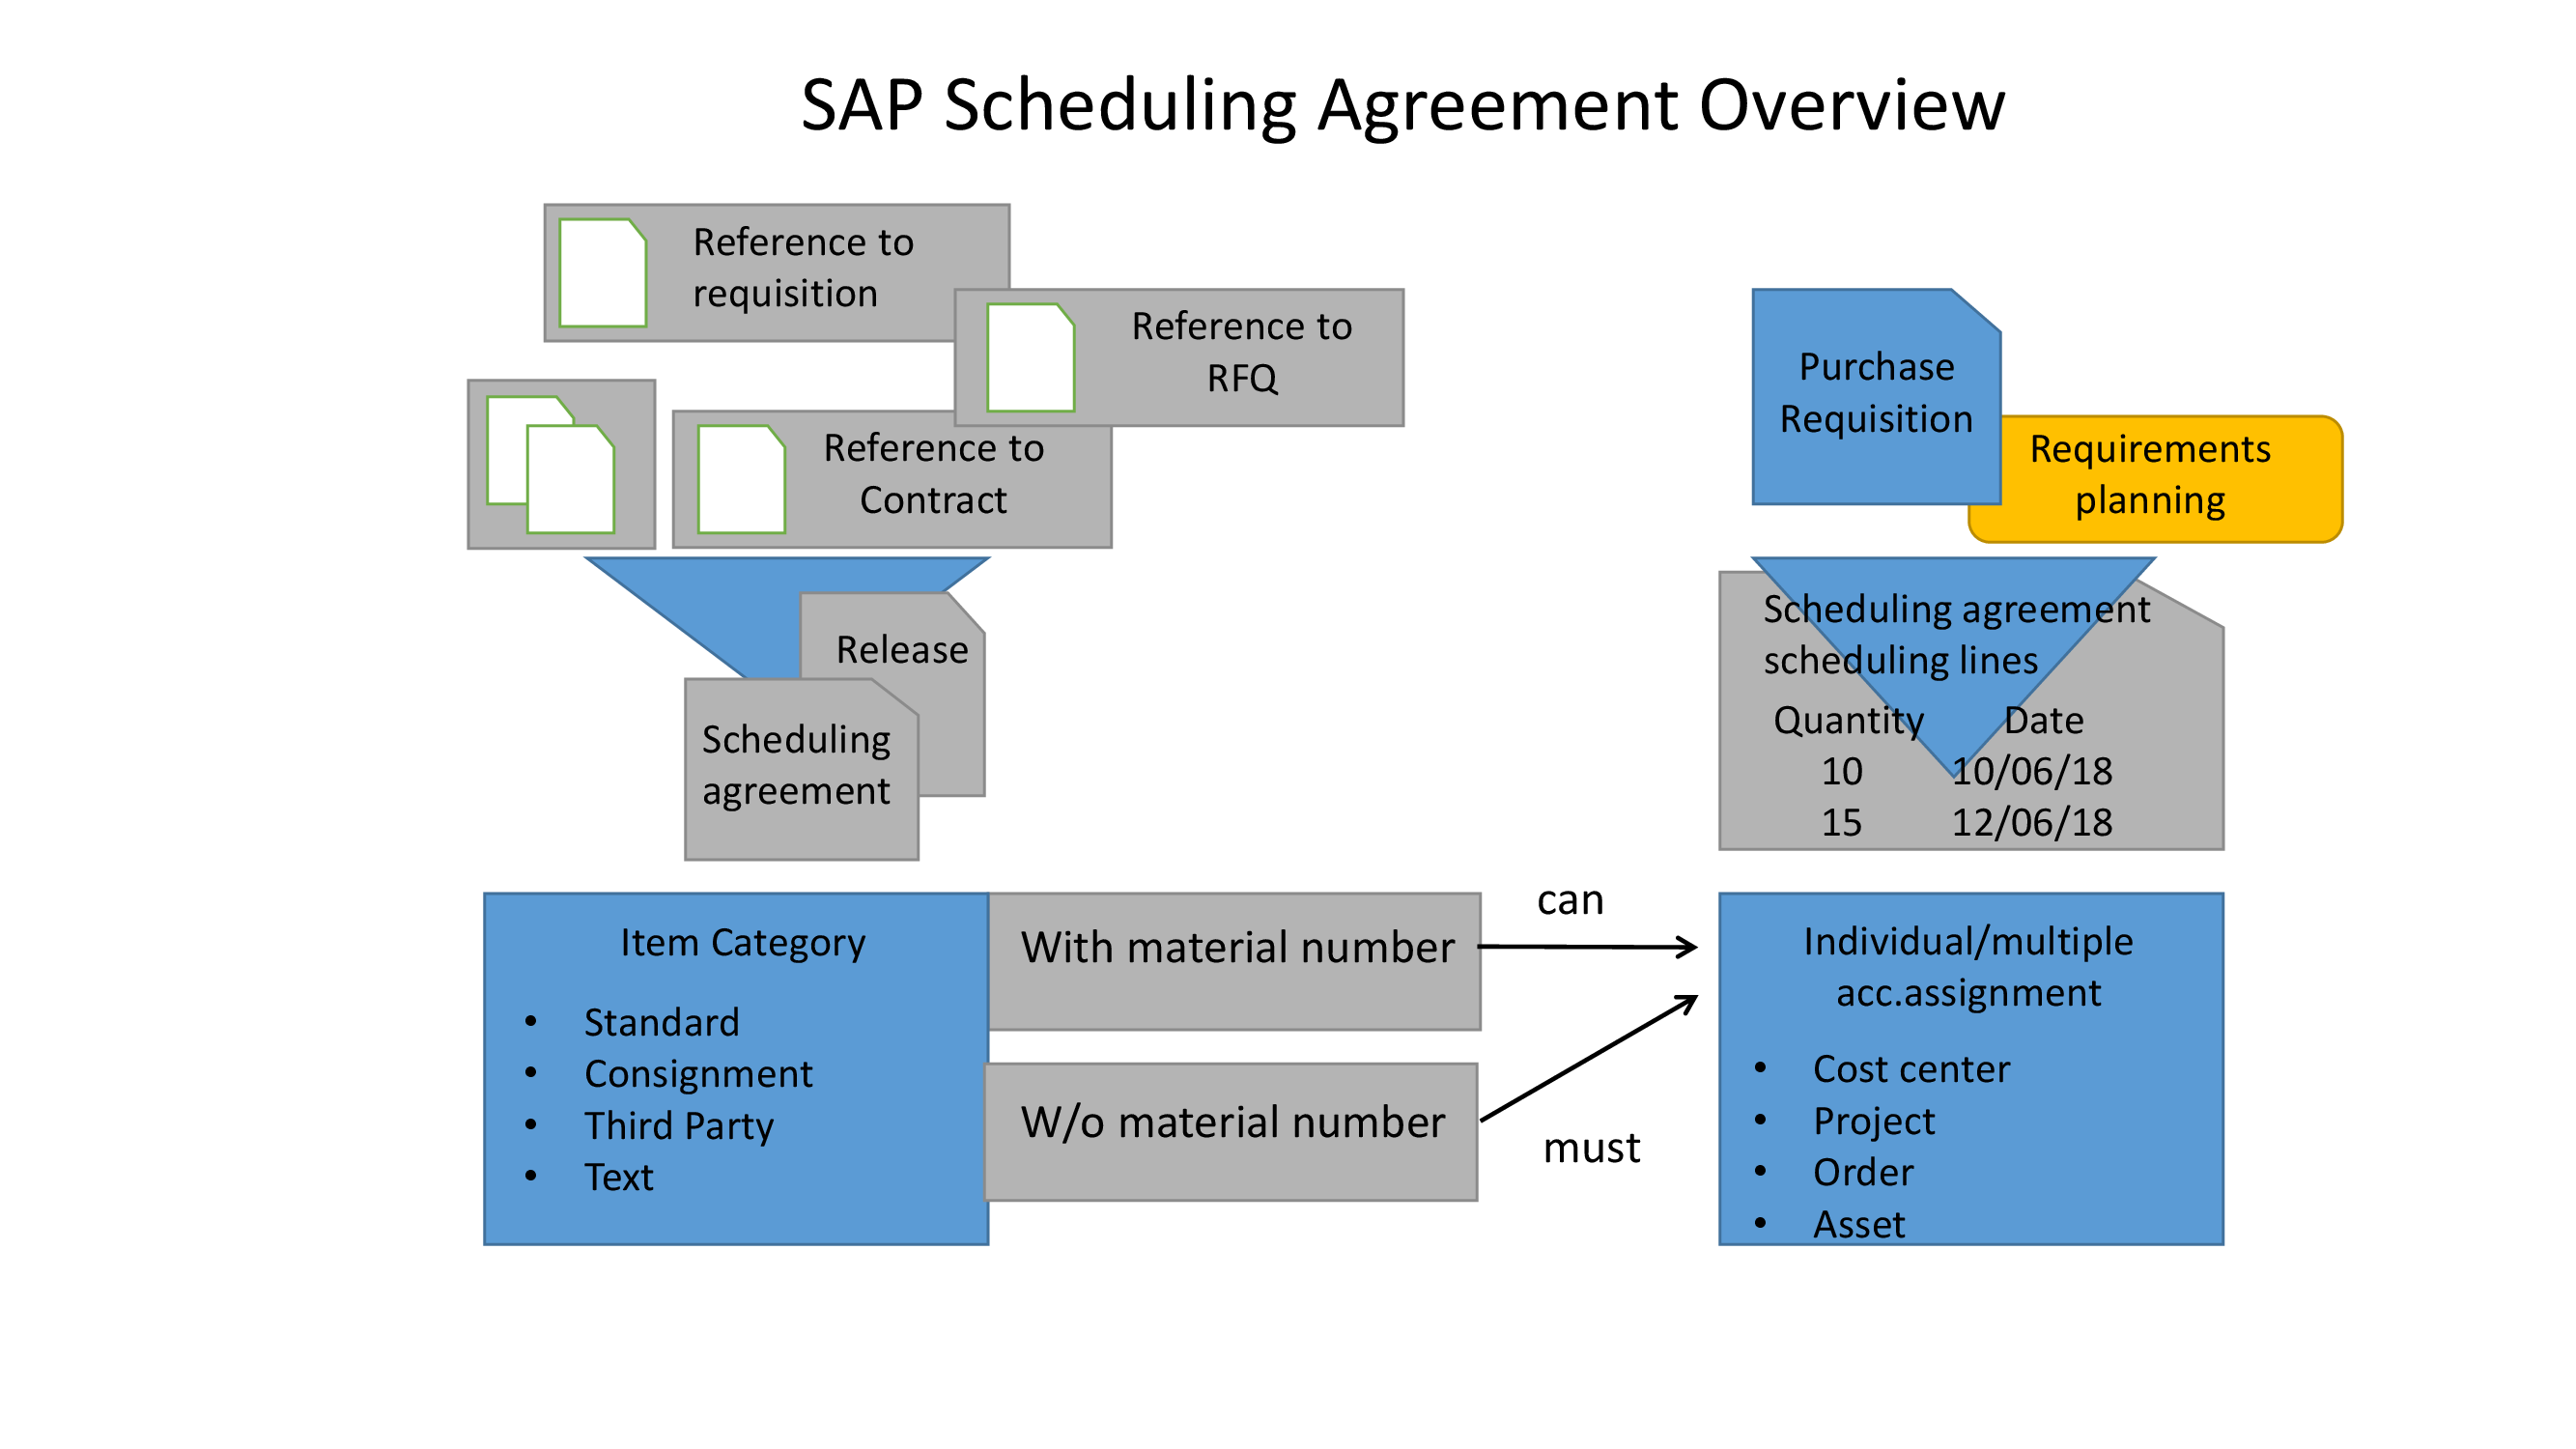 SAP Outline Agreement : SAP Scheduling Agreement Process